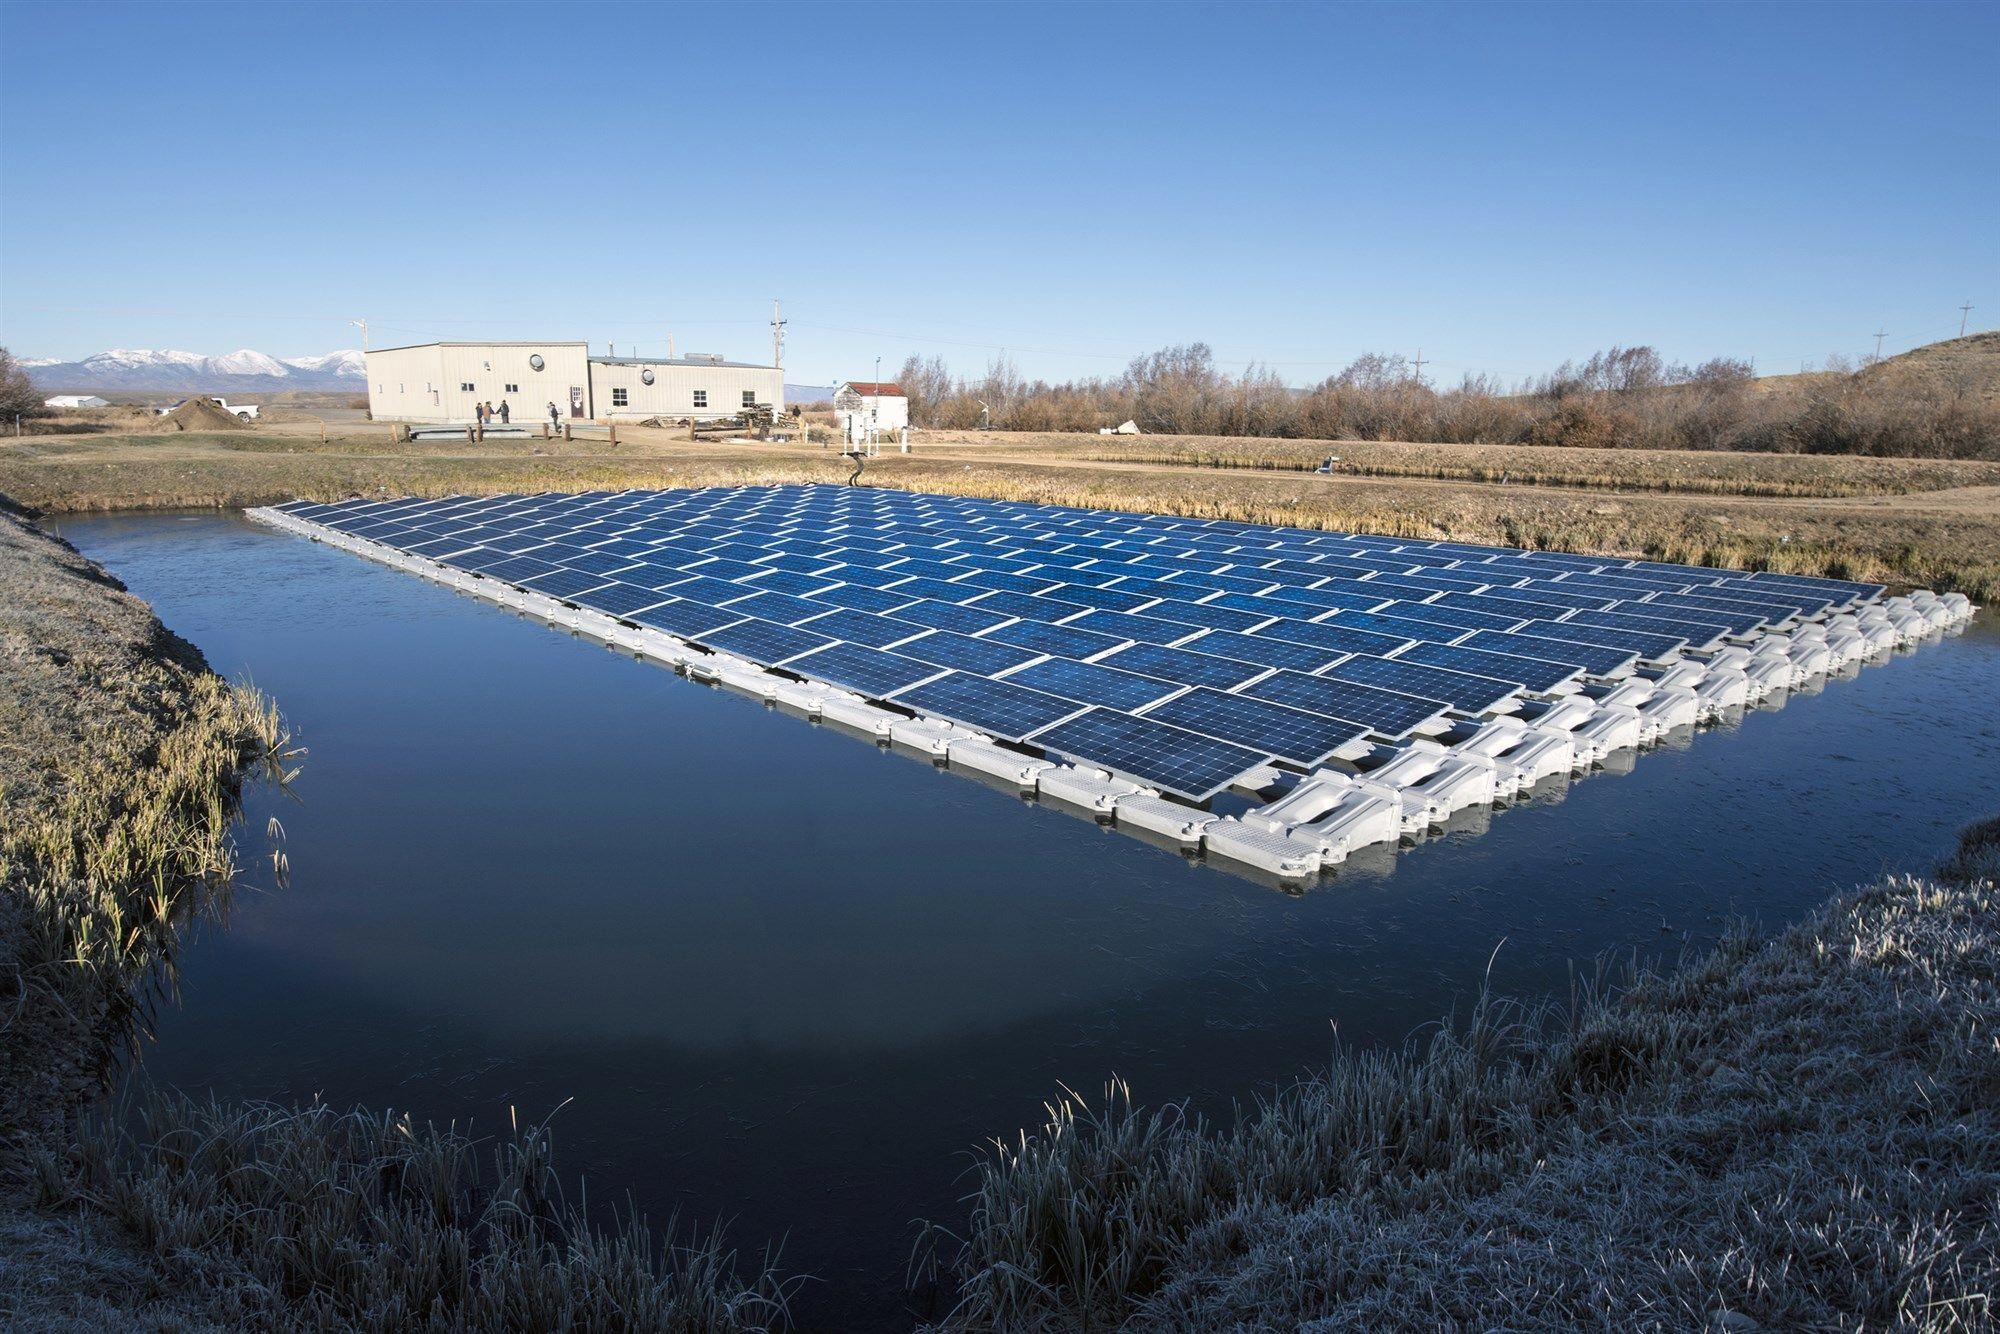 Floating Solar Farms How Floatovoltaics Could Provide Power Without Taking Up Valuable Real Estate Solar Farm Solar Panels Solar